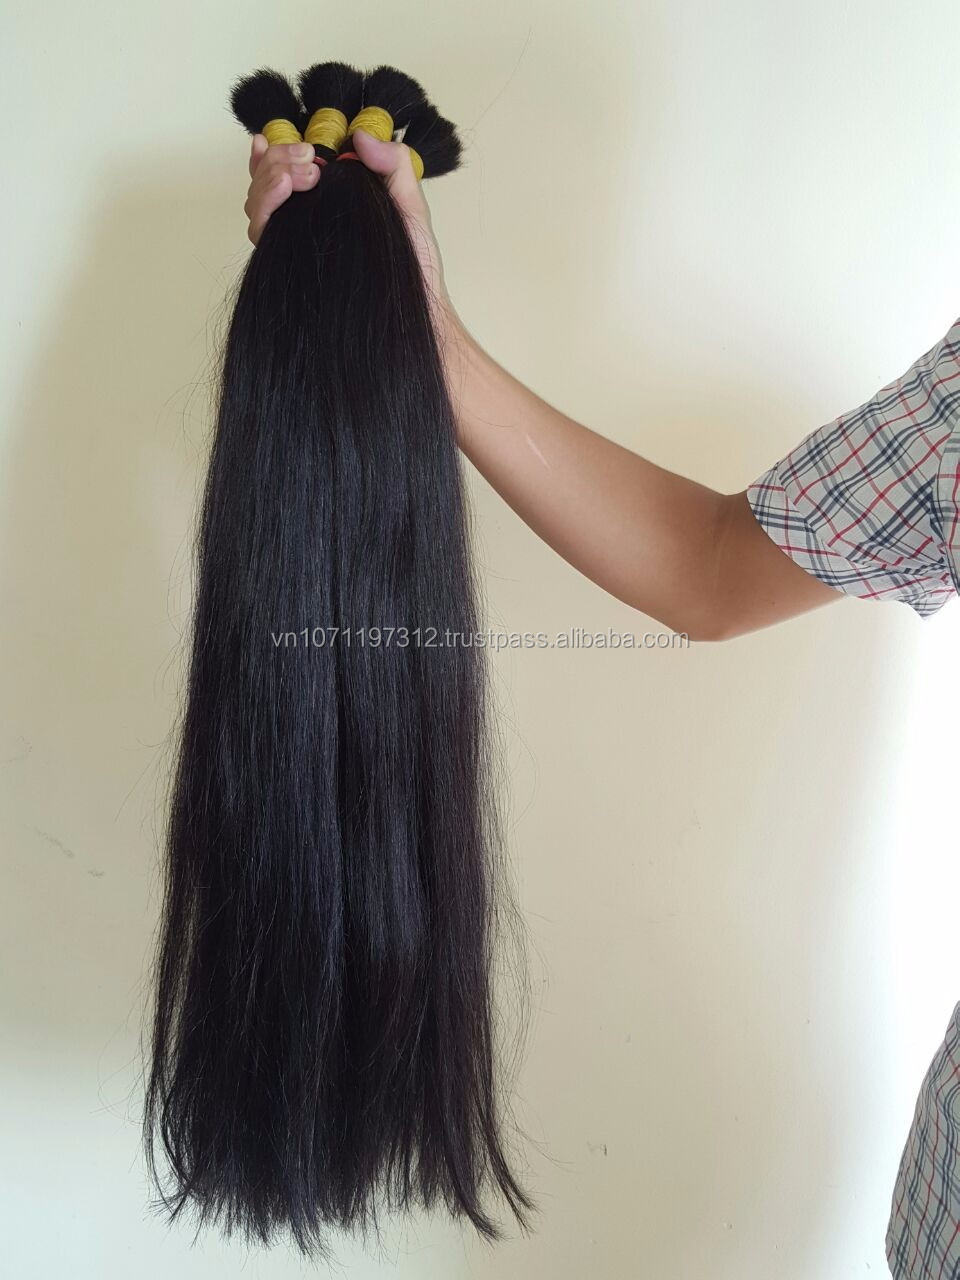 good factory unprocessed 100% real raw virgin hair beauty water wave weaving raw hair hair weave color #44